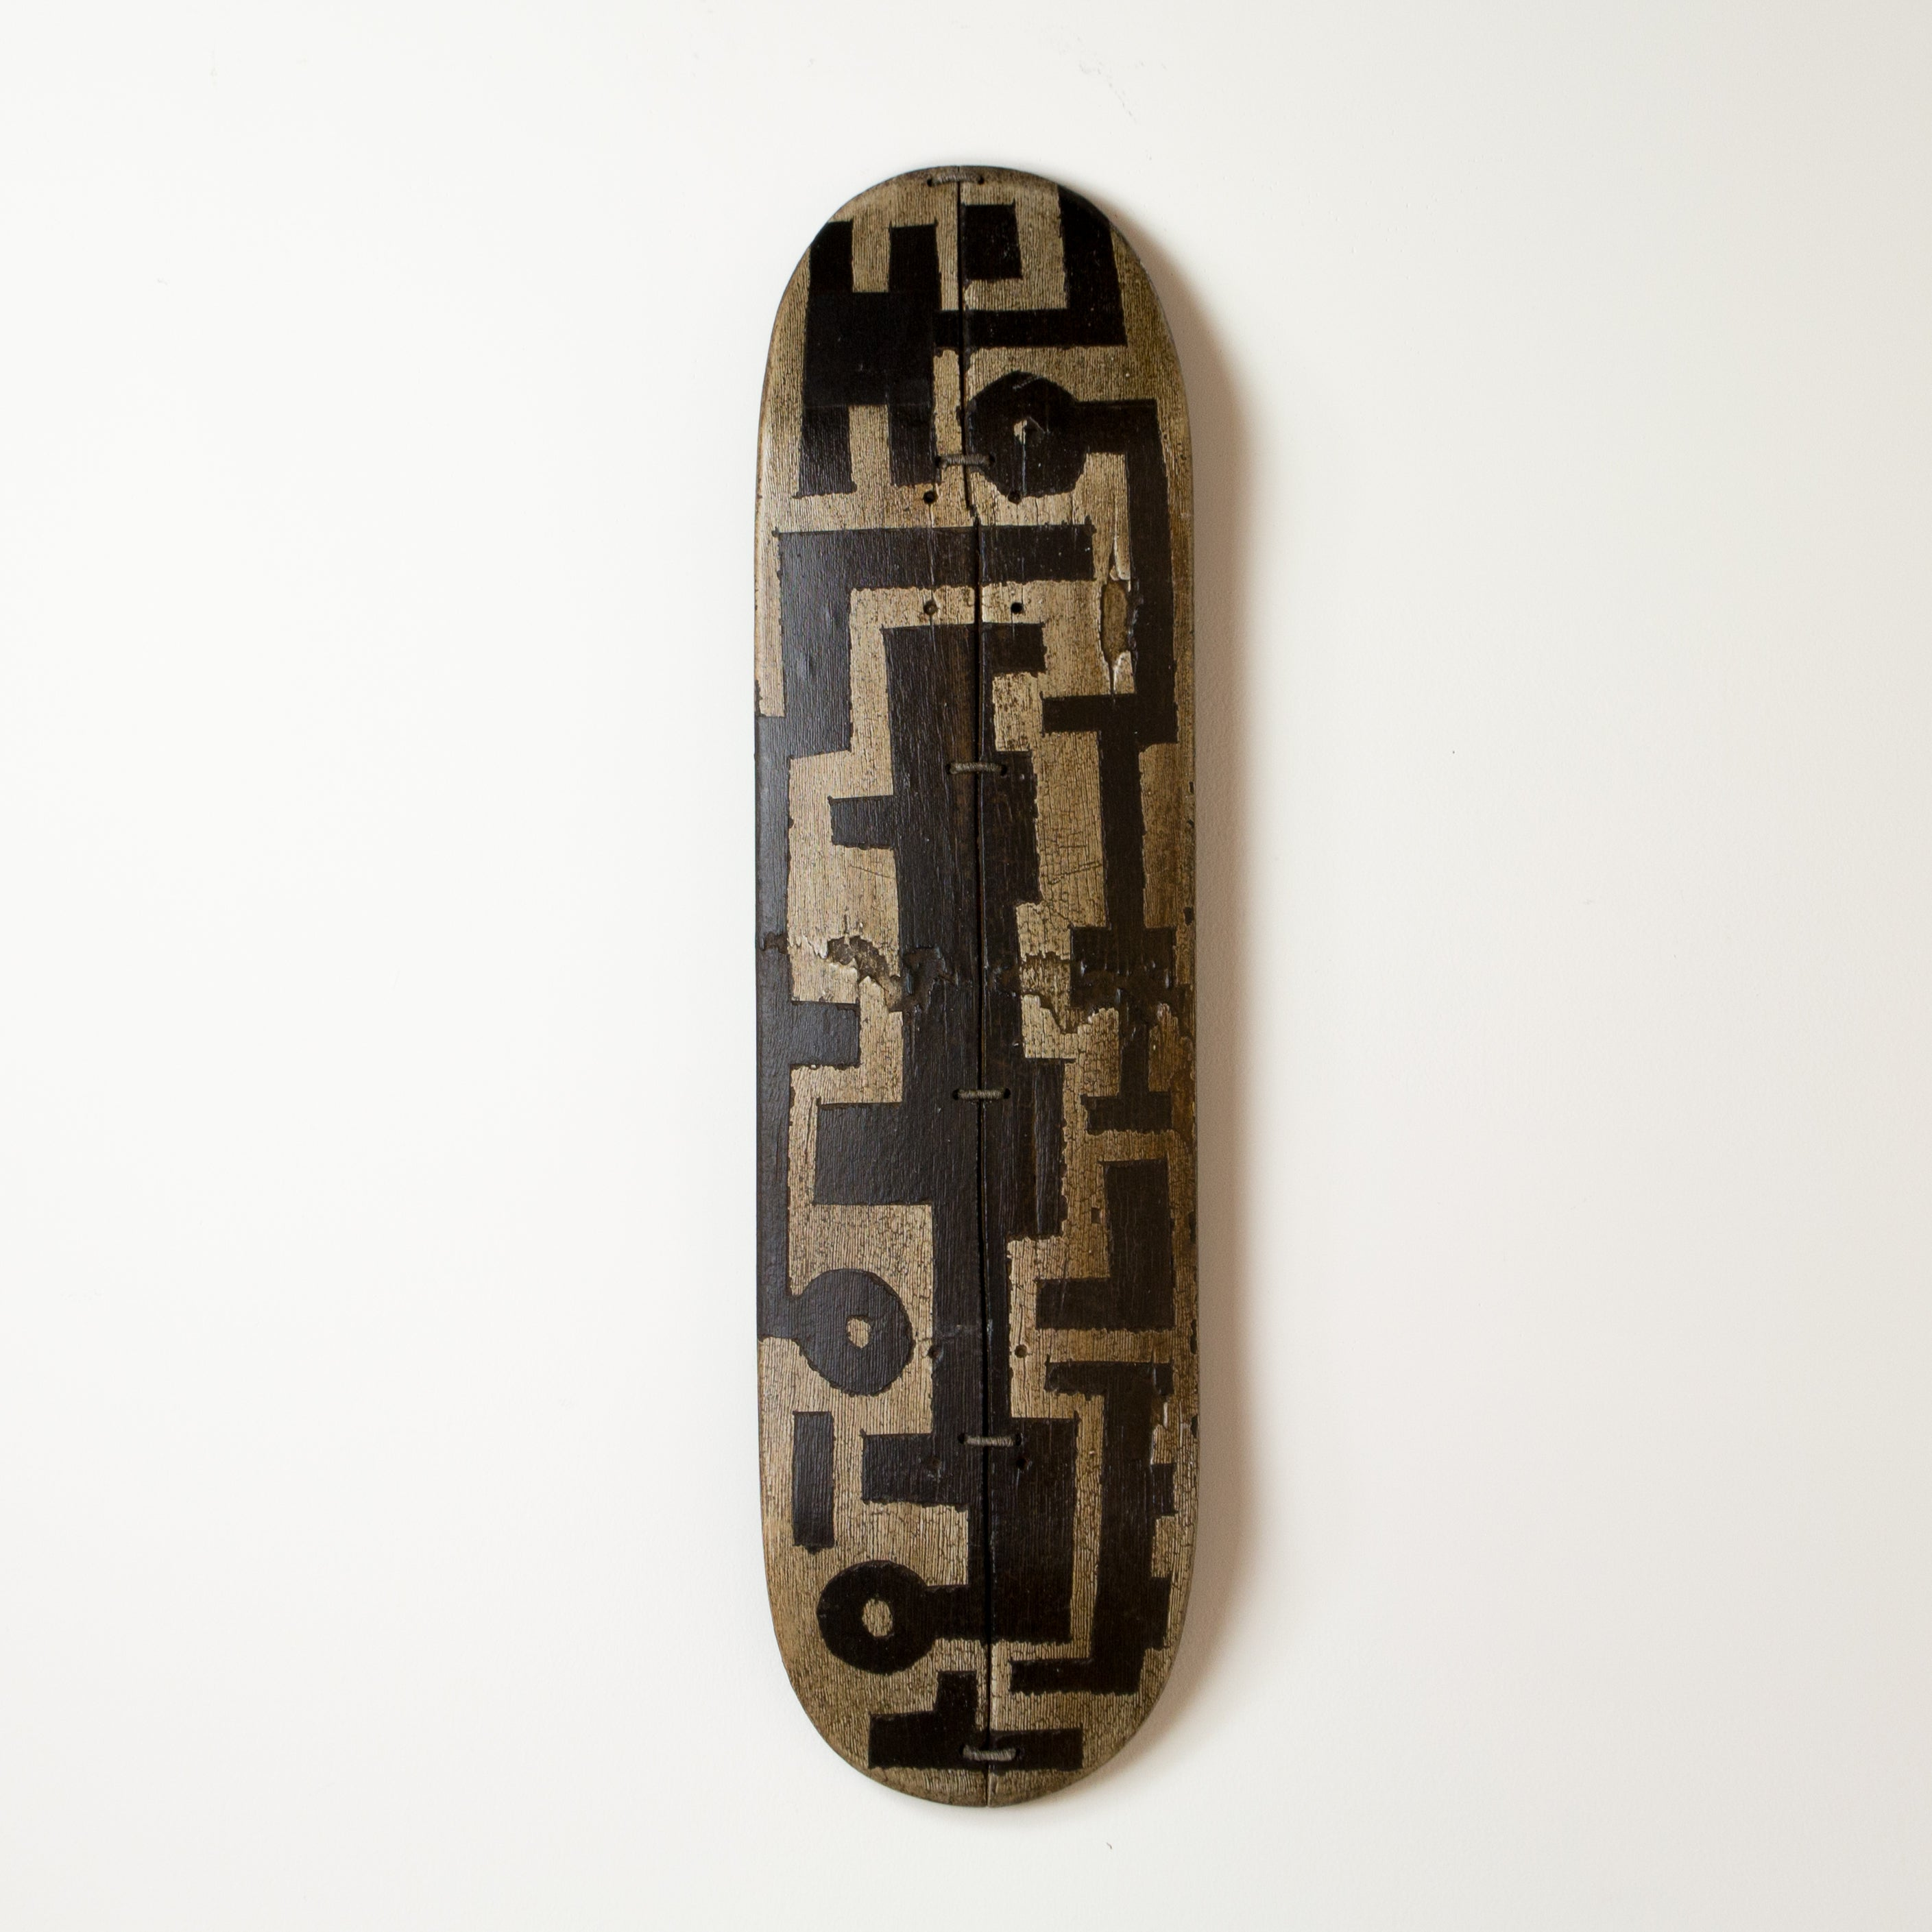 Lingo Recycled Skateboard